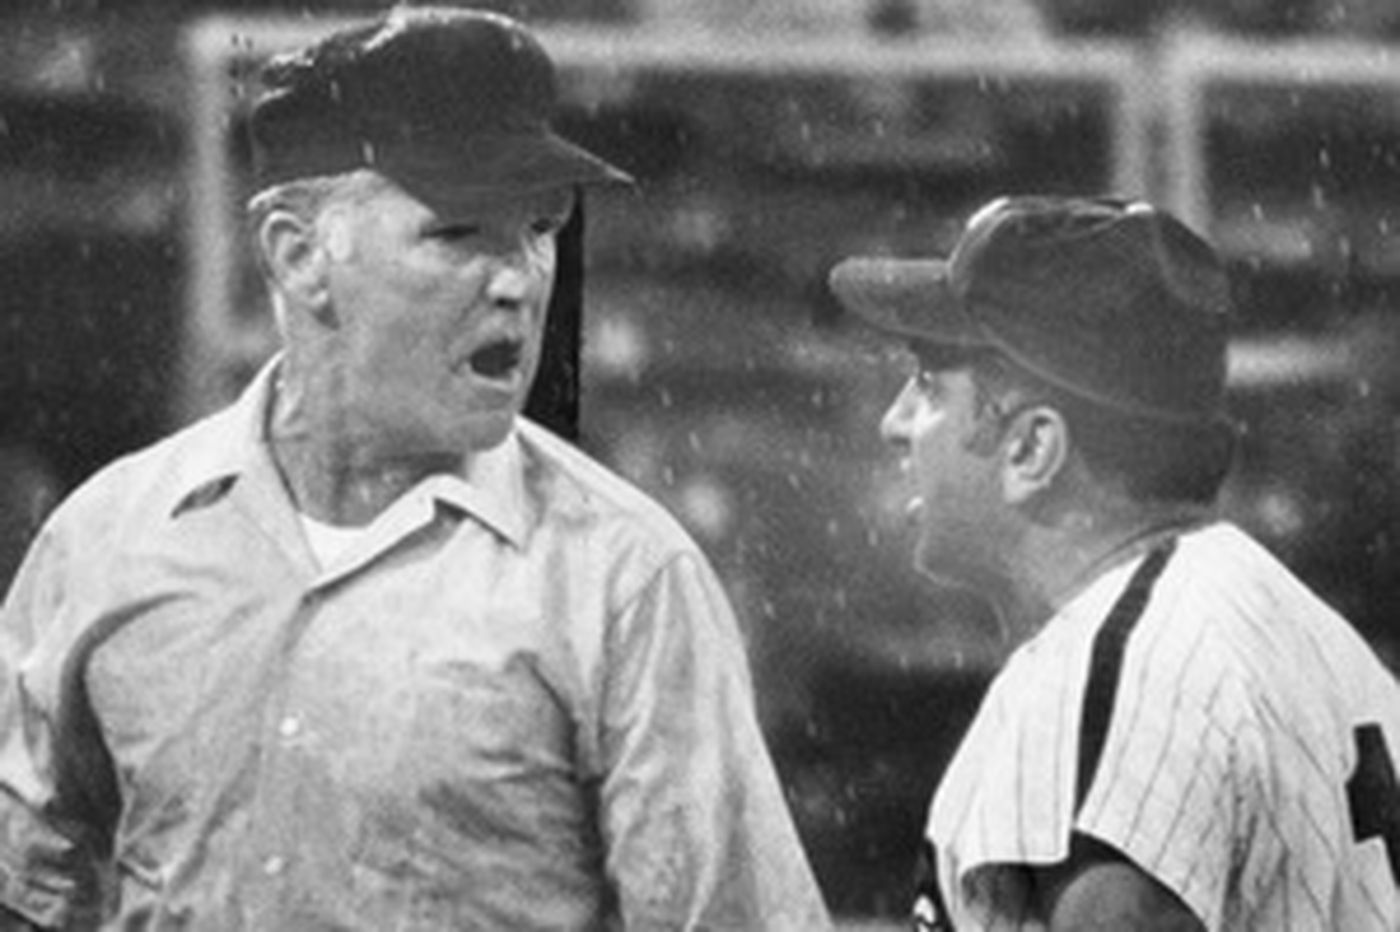 Former Phillies manager Frank Lucchesi dies at 92